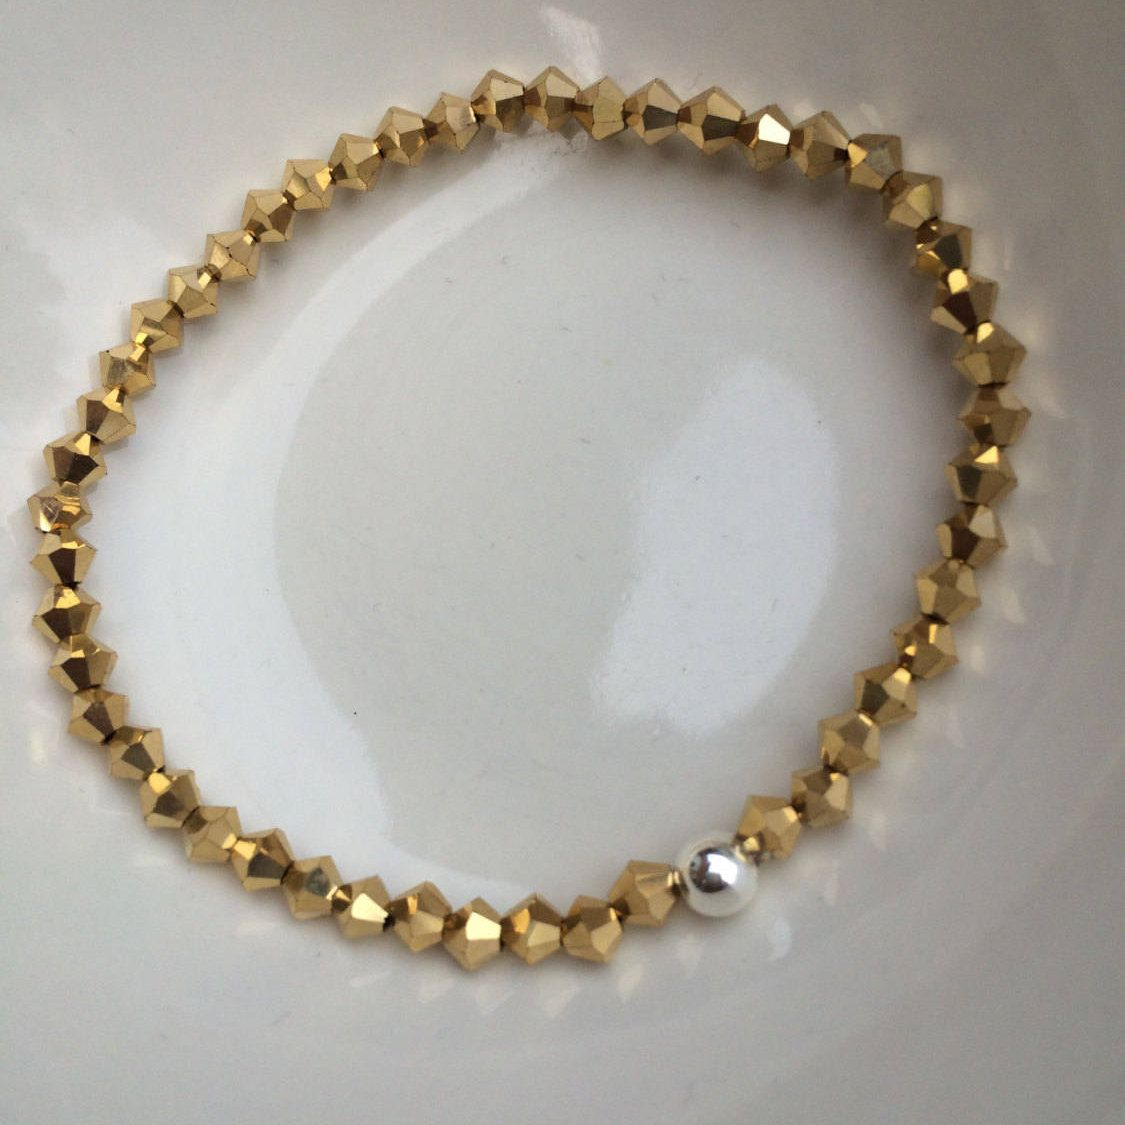 Gold Swarovski Crystal Stretch Bracelet Sterling Silver Or Fill Bead Small Tiny Jewelry Jewellery